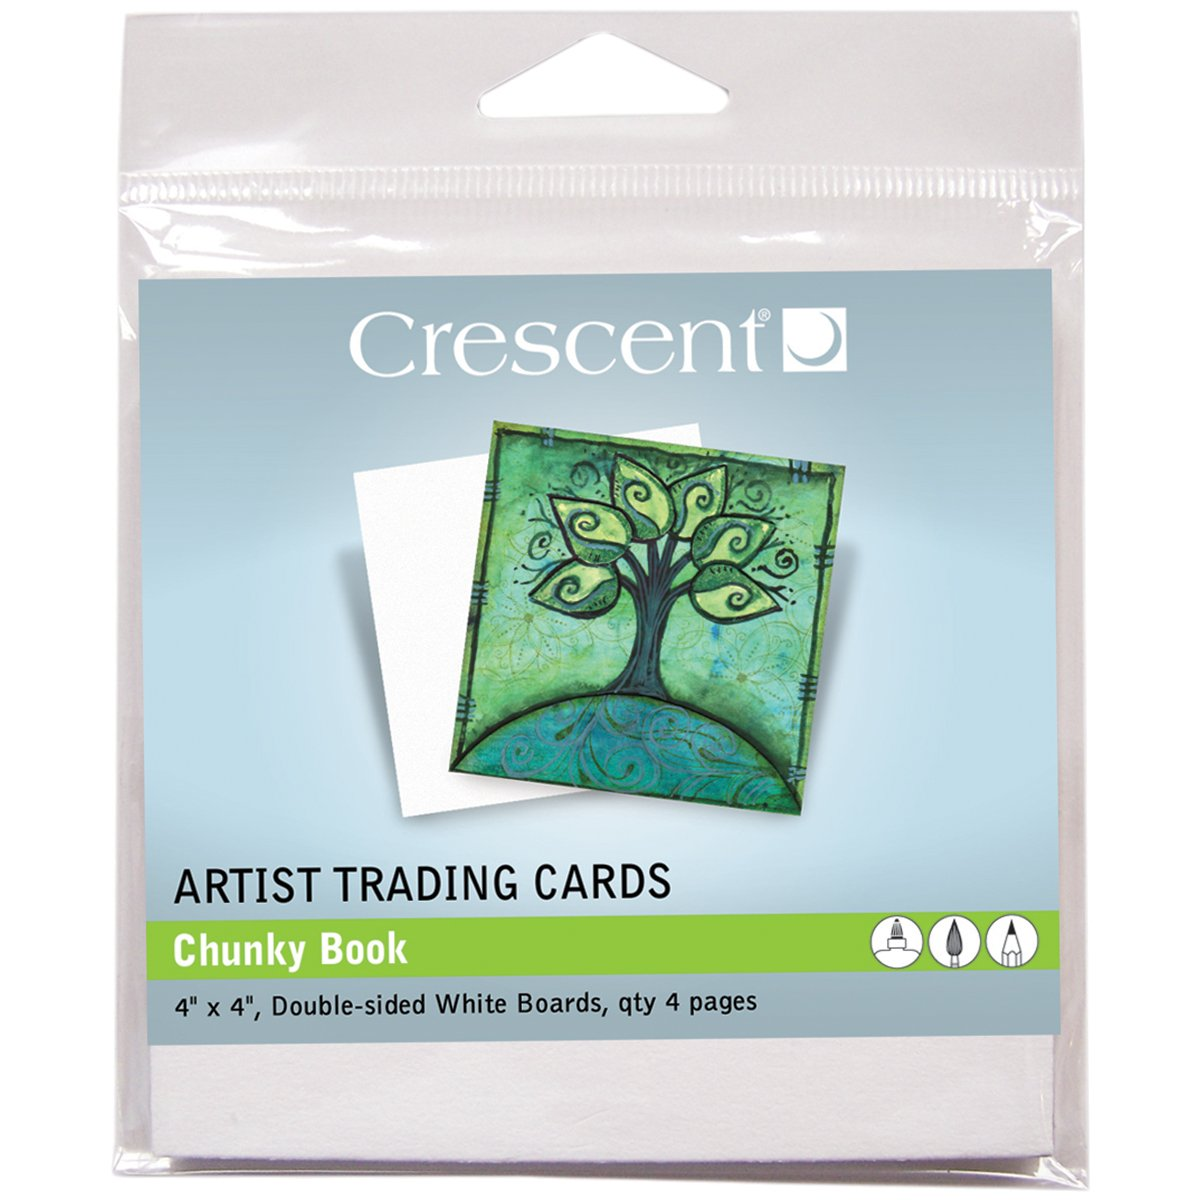 Crescent Cardboard Artist Chunky Book Trading Cards (4 Pack), 4' by 4', White